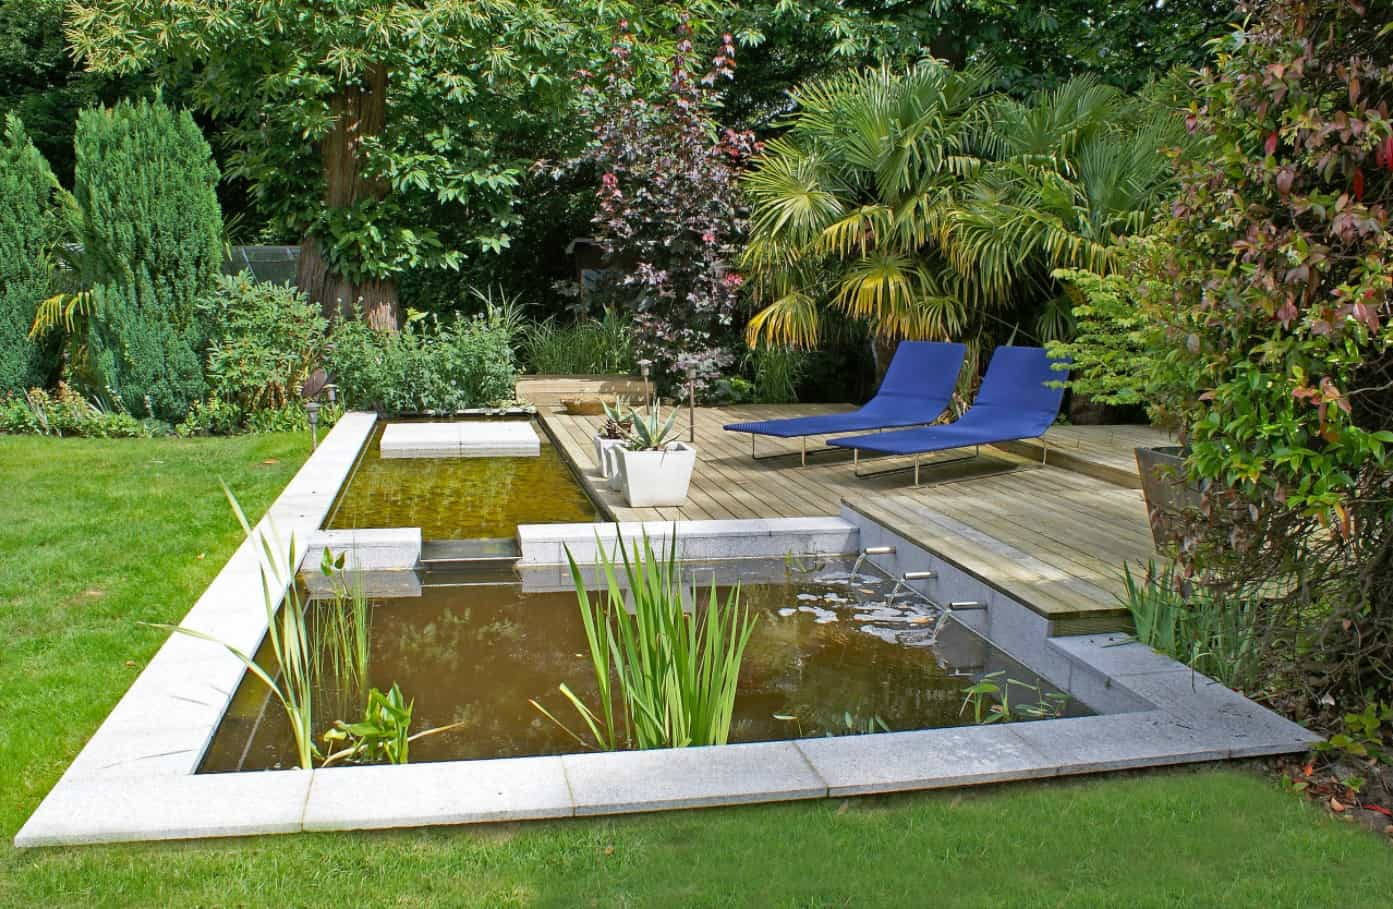 Make Your Garden Your Favorite Hangout Spot. Great landscaping design with ponds and two chaise lounge chairs